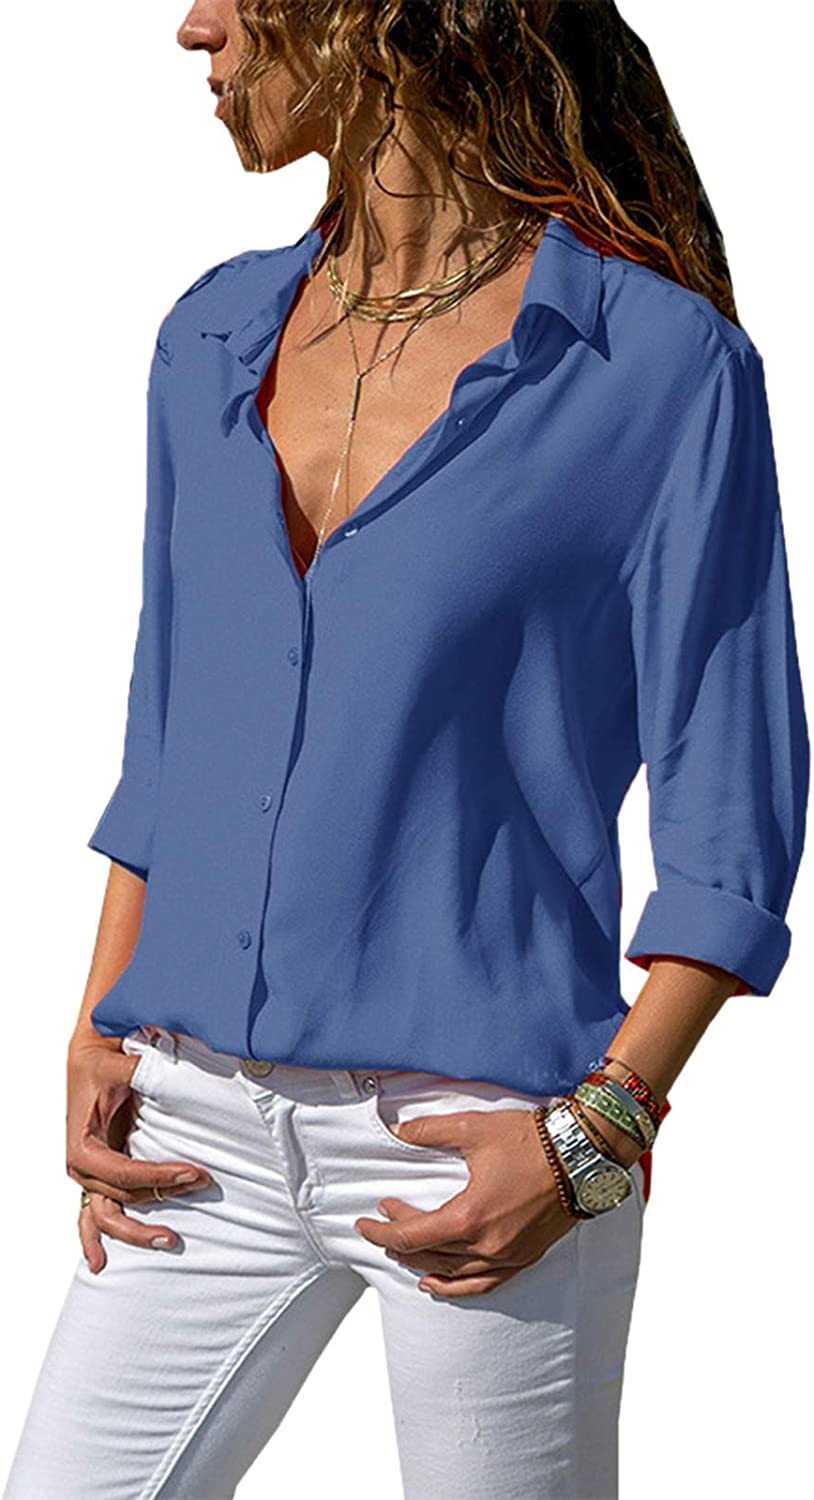 Bellastory Women's Button Down Shirts Roll-up Sleeve Blouse V Neck Casual Tunics Solid Color Tops